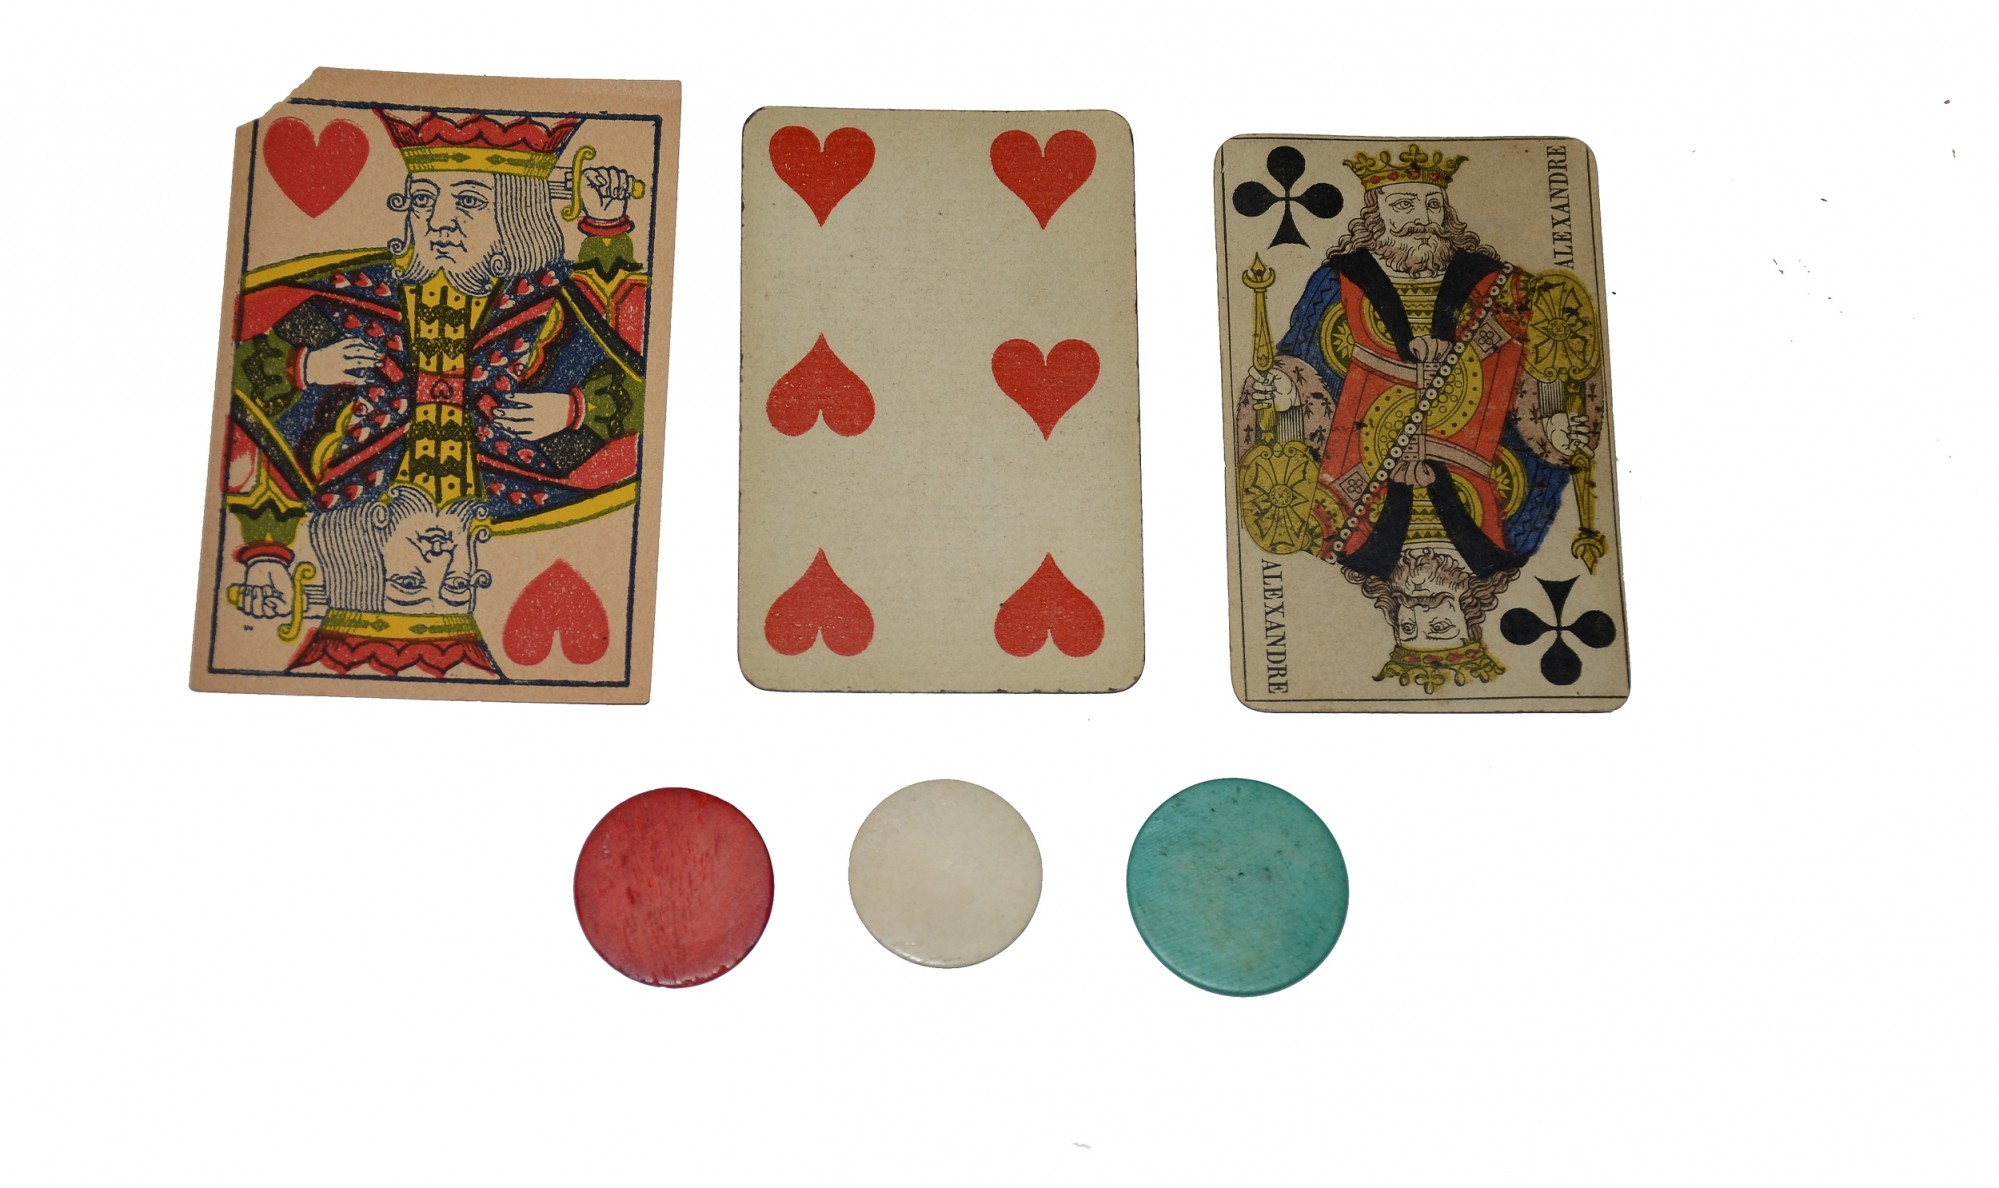 CIVIL WAR PLAYING CARDS WITH BONE POKER CHIPS